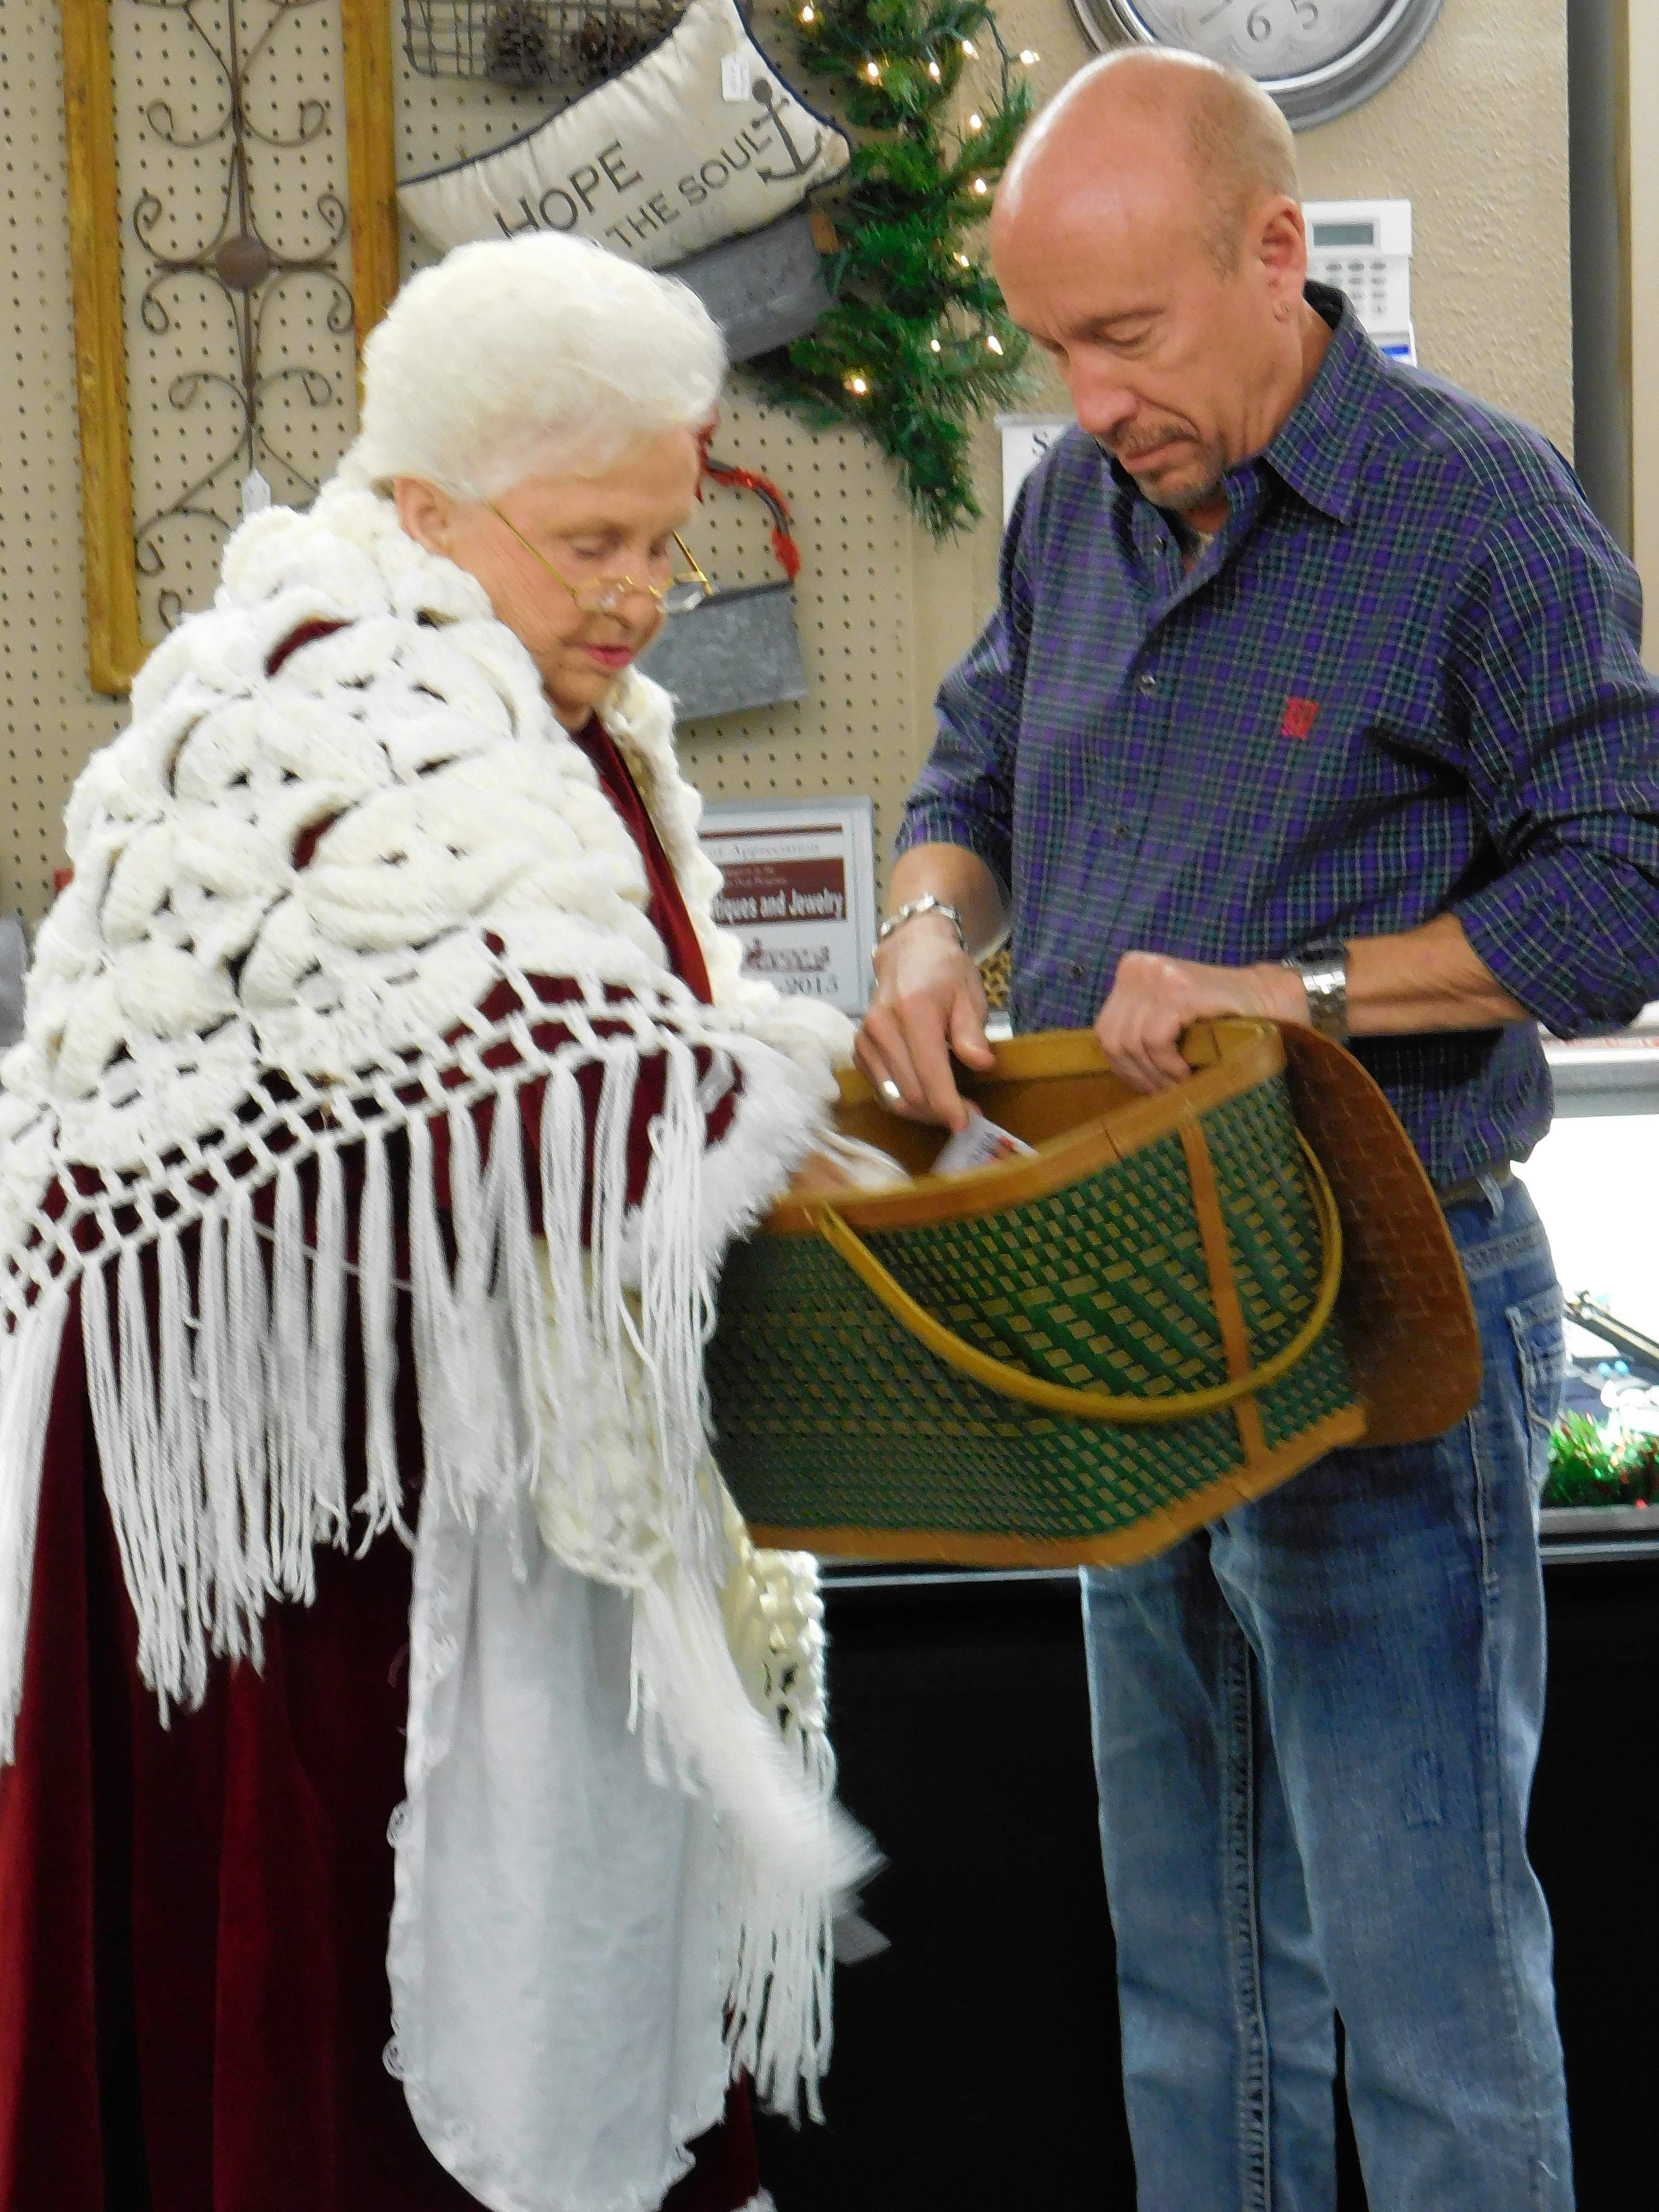 Mrs. Claus (Opal Avery of Johnston City) helped Kevin Edwards draw the raffle winners after an evening of posting for photos courtesy of Shooting Star Photography. Edwards raffled five items donated by the family of the late Robert and Georgina Hill.